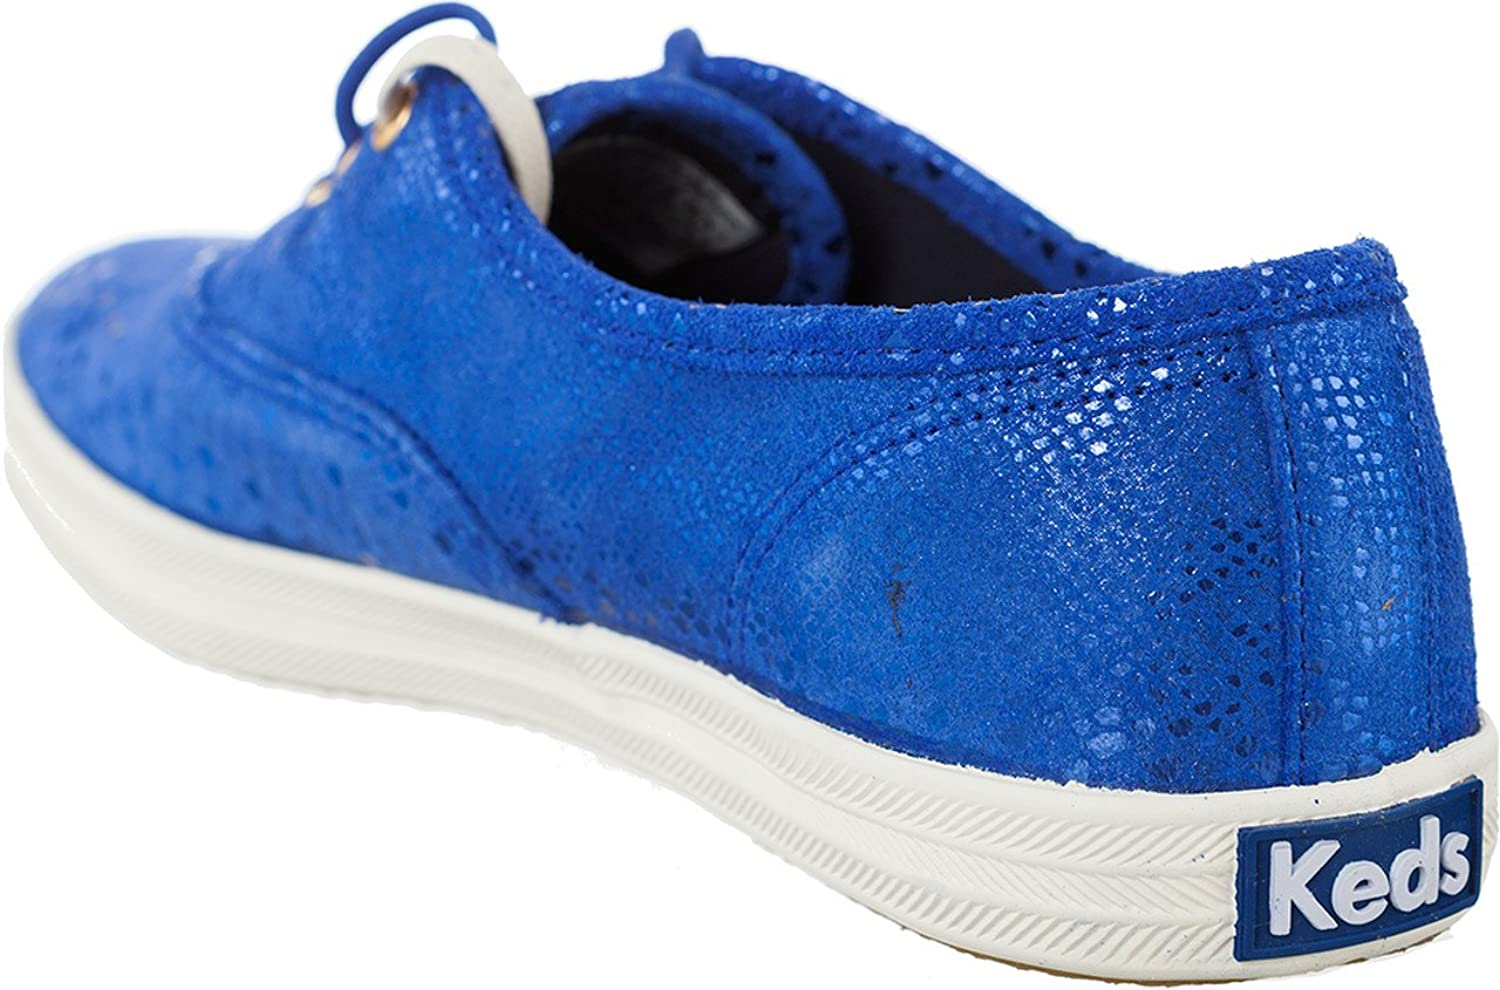 Keds Champion Exotic Shimmer Blue KWH54610 JgwicI9T1